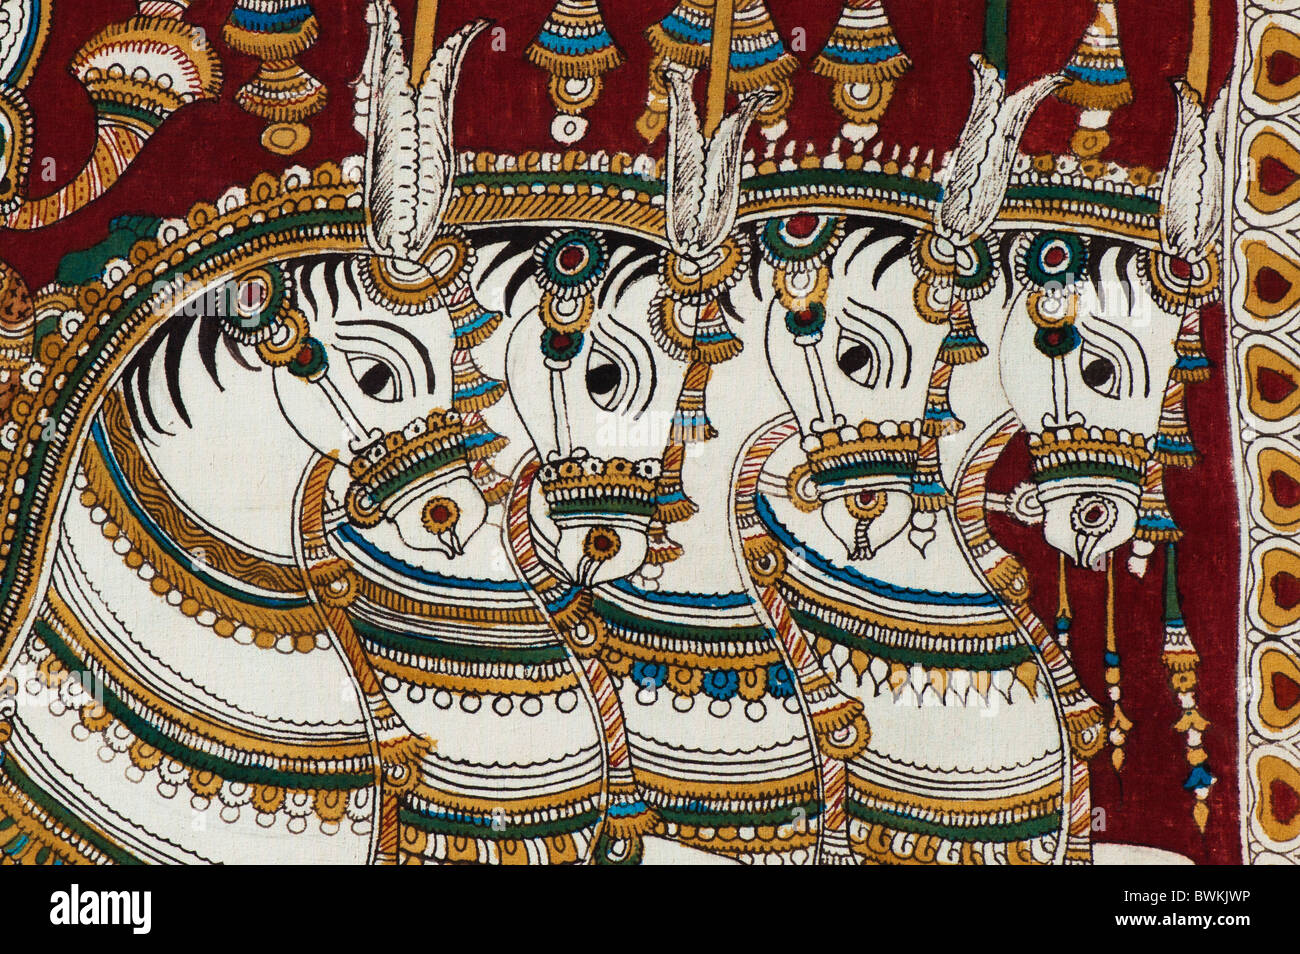 Traditional Indian Hindu Painting Of Four Horses India Stock Photo Alamy